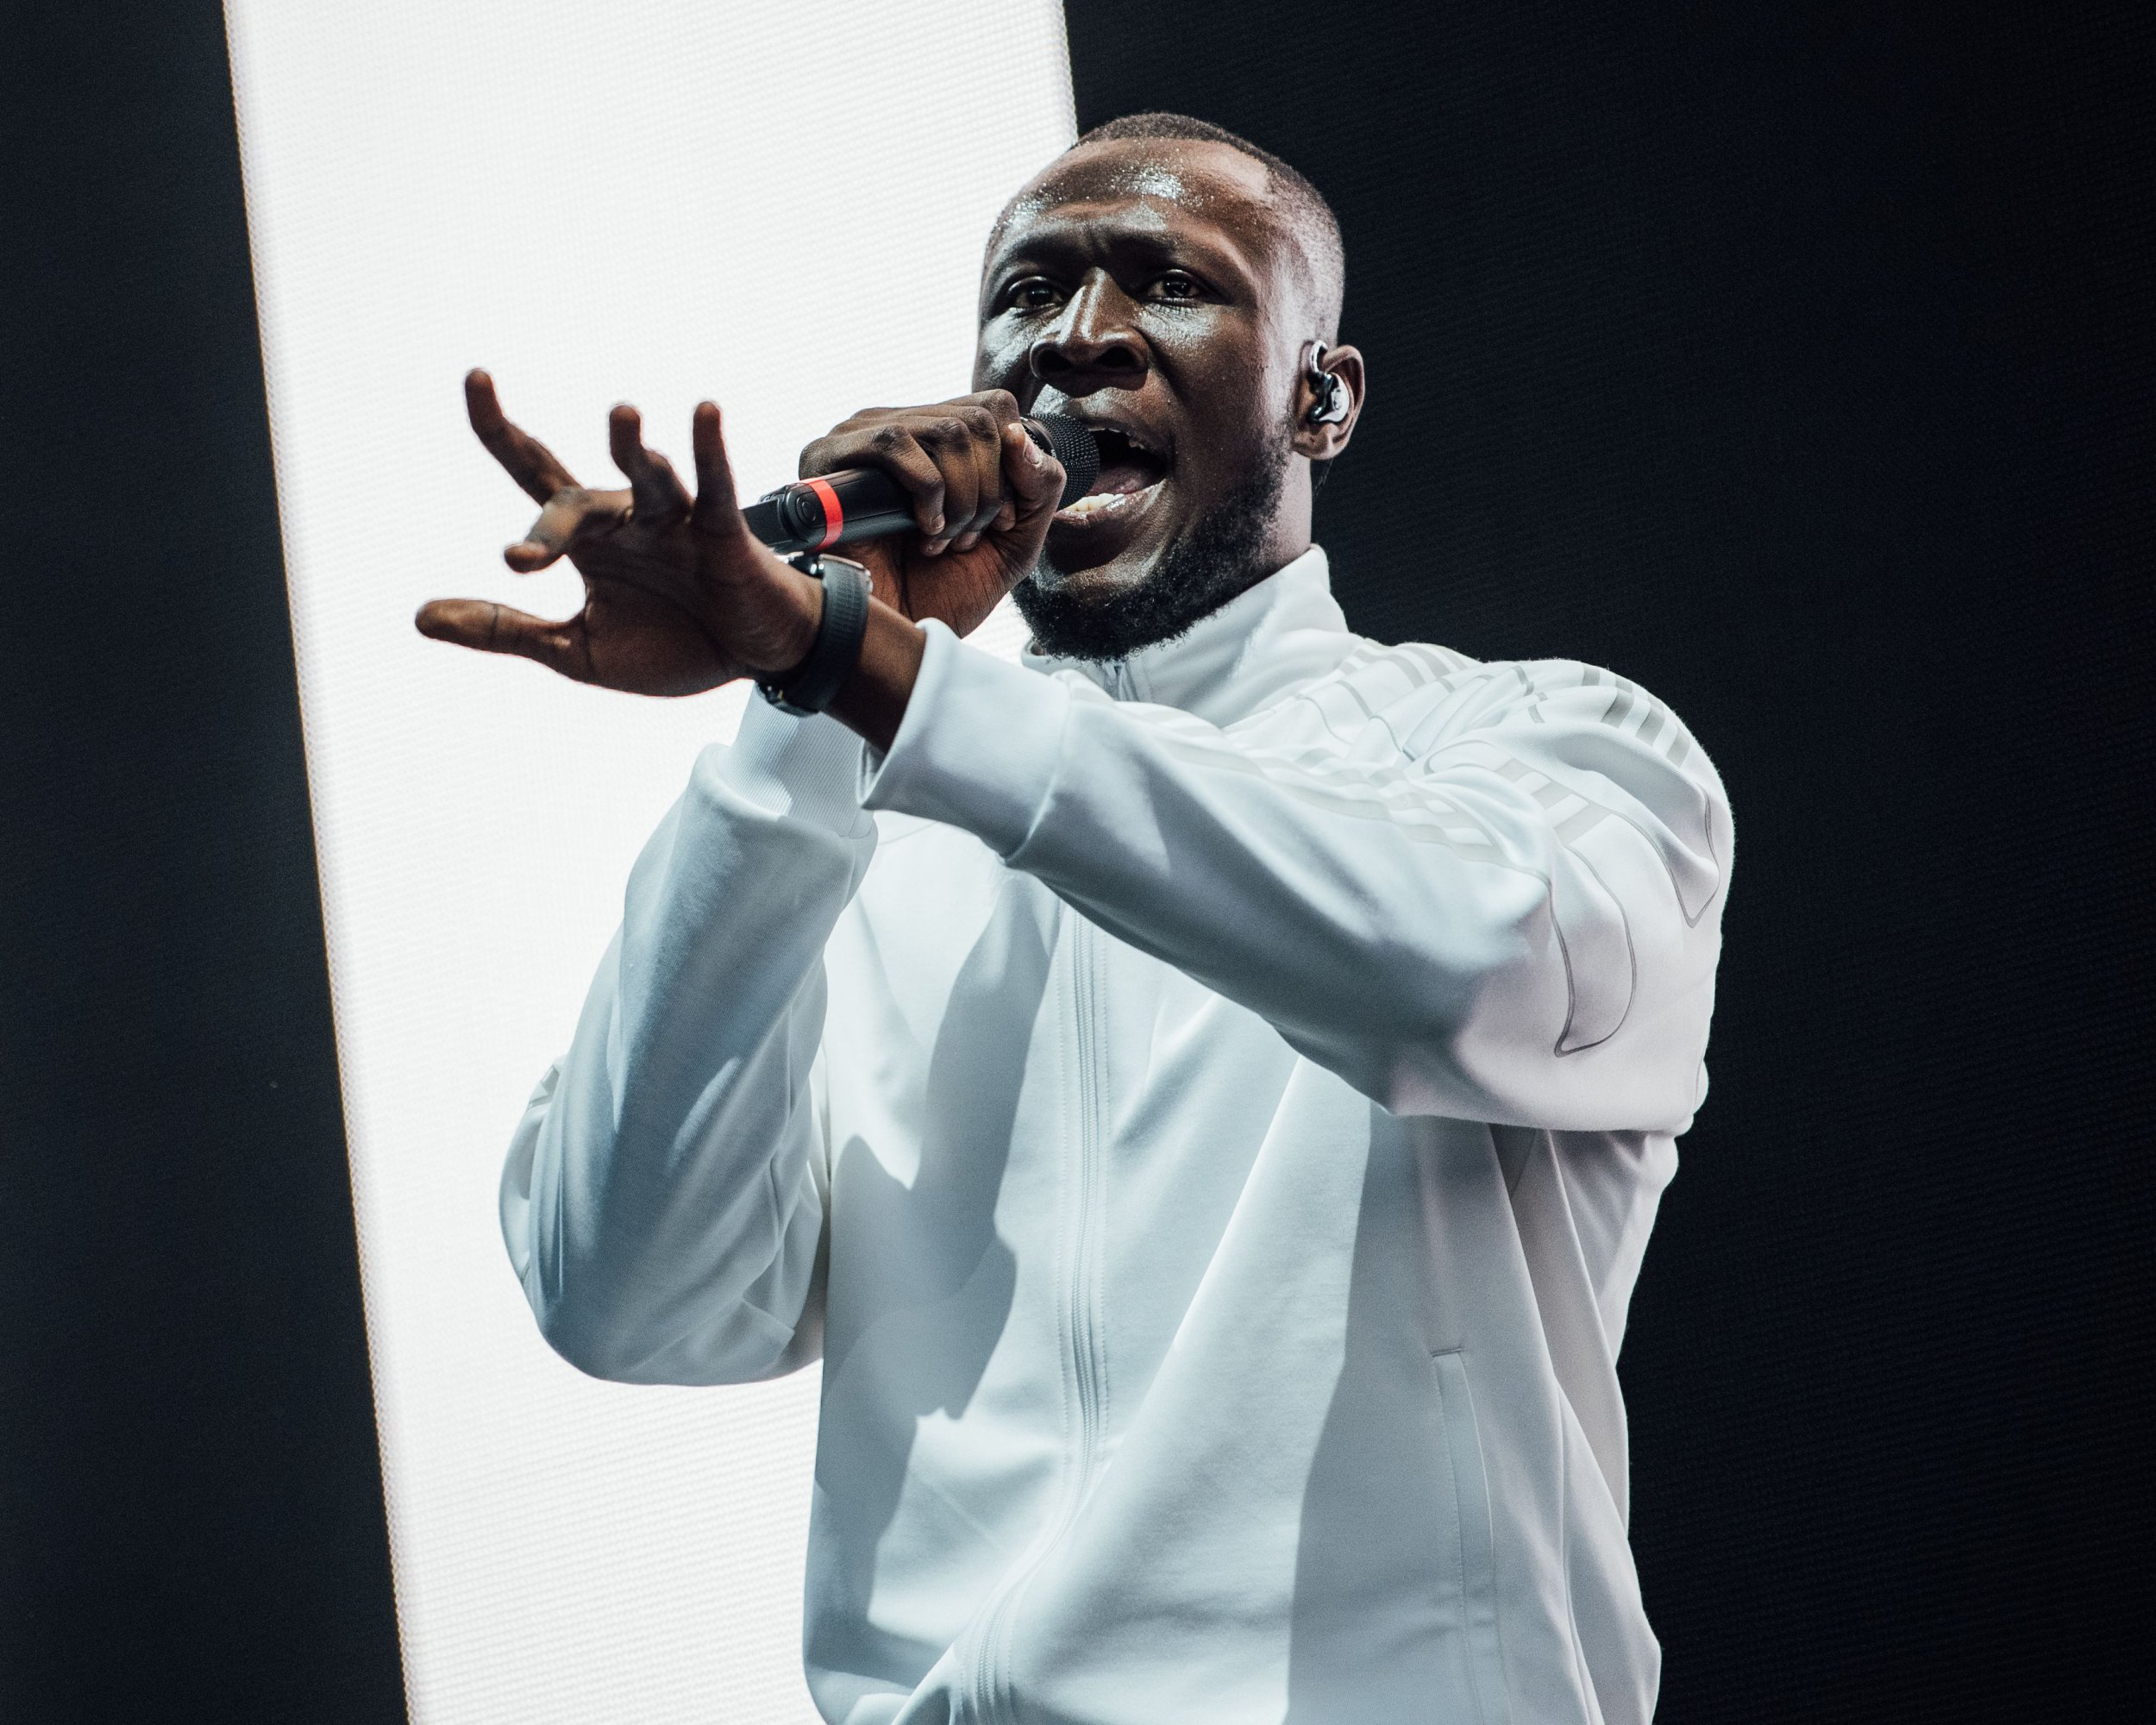 Stormzy has cancelled his Snowbombing festival show